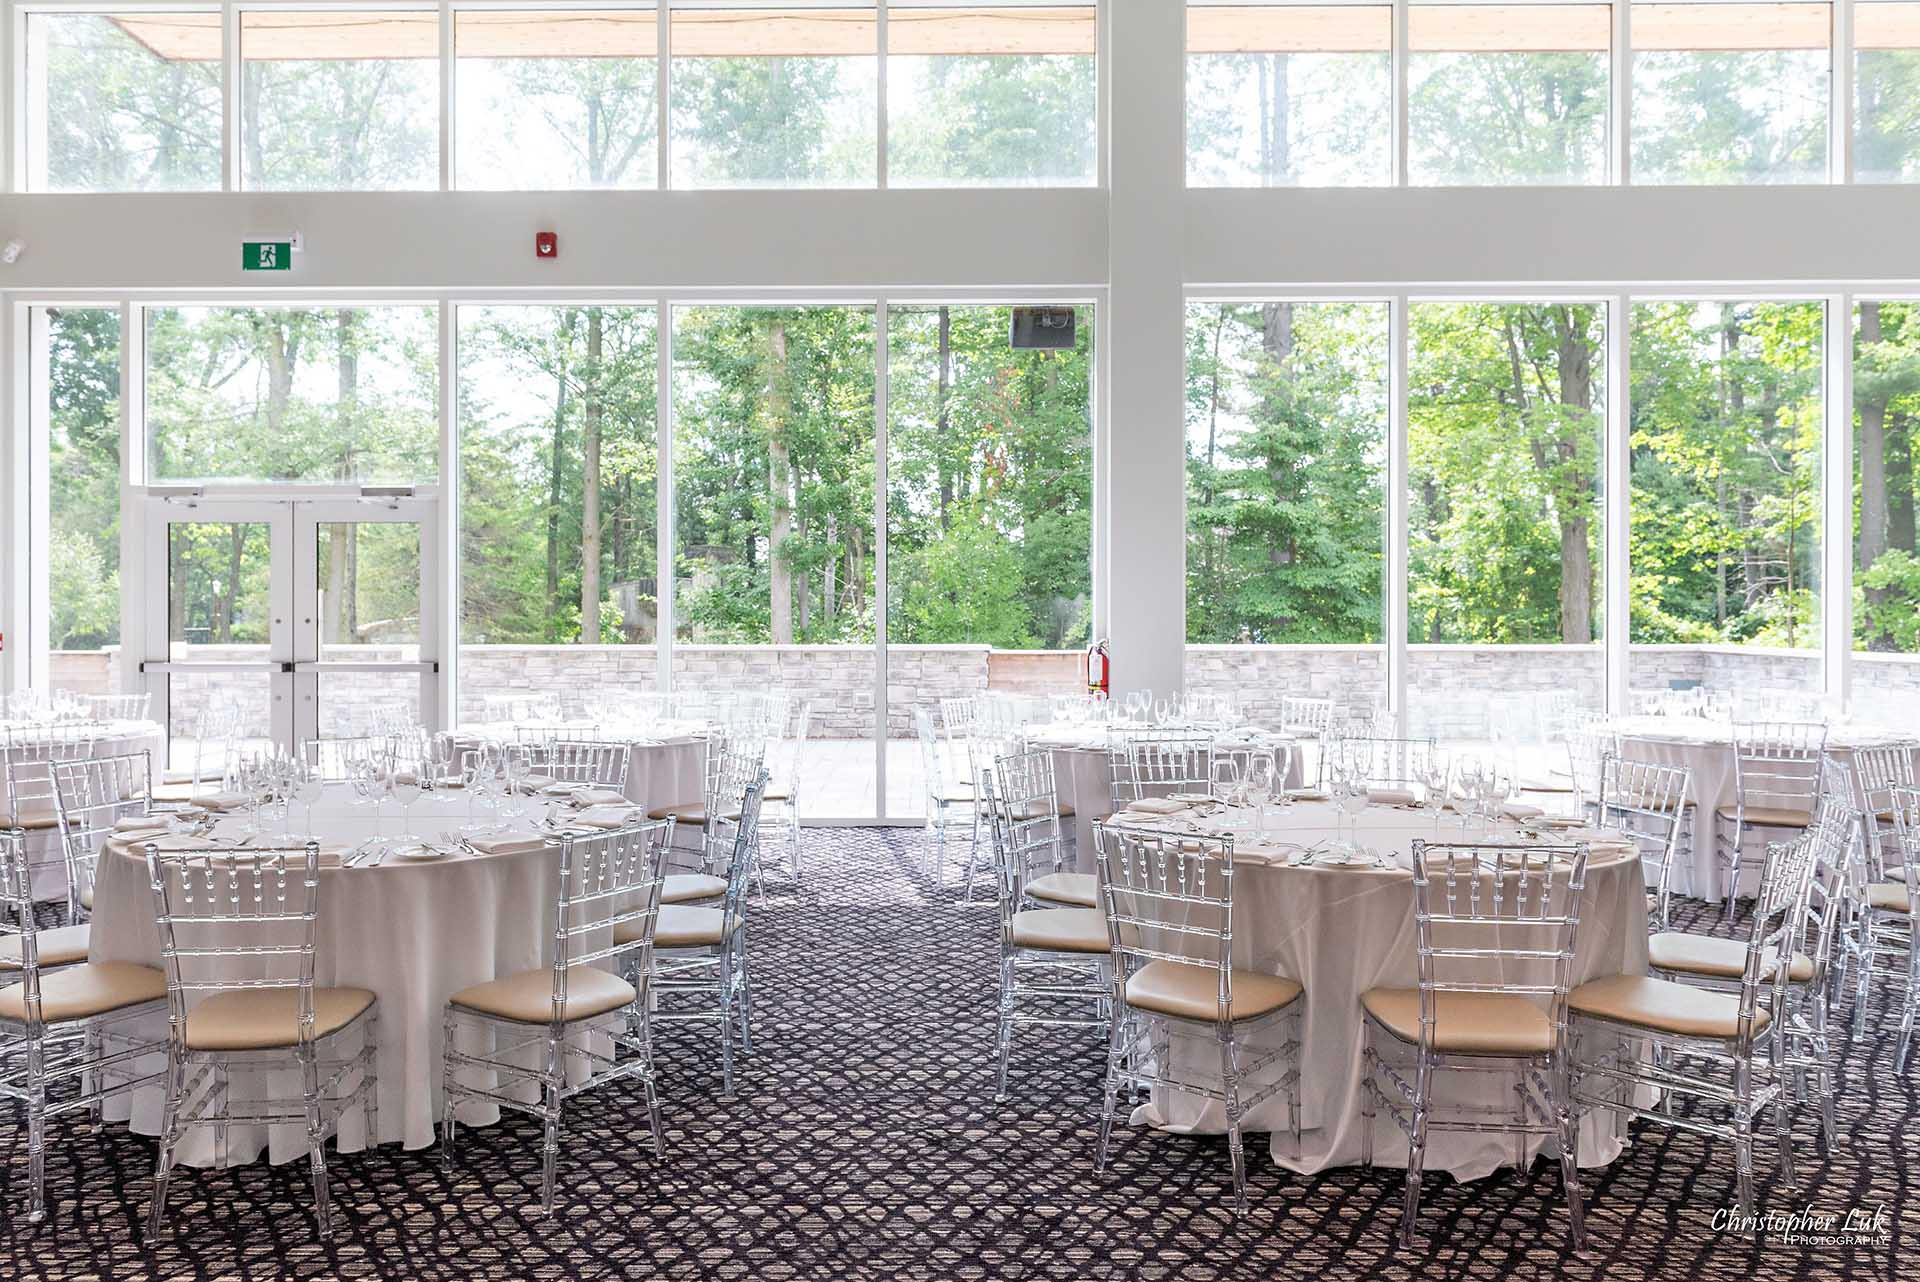 Christopher Luk Toronto Wedding Photographer - The Guild Inn Estate Guildwood Park and Gardens Event Venue Historical Scarborough Bluffs Bickord House Bistro Lunch Dinner Reception Hall Wide Tables Chiavari Chairs